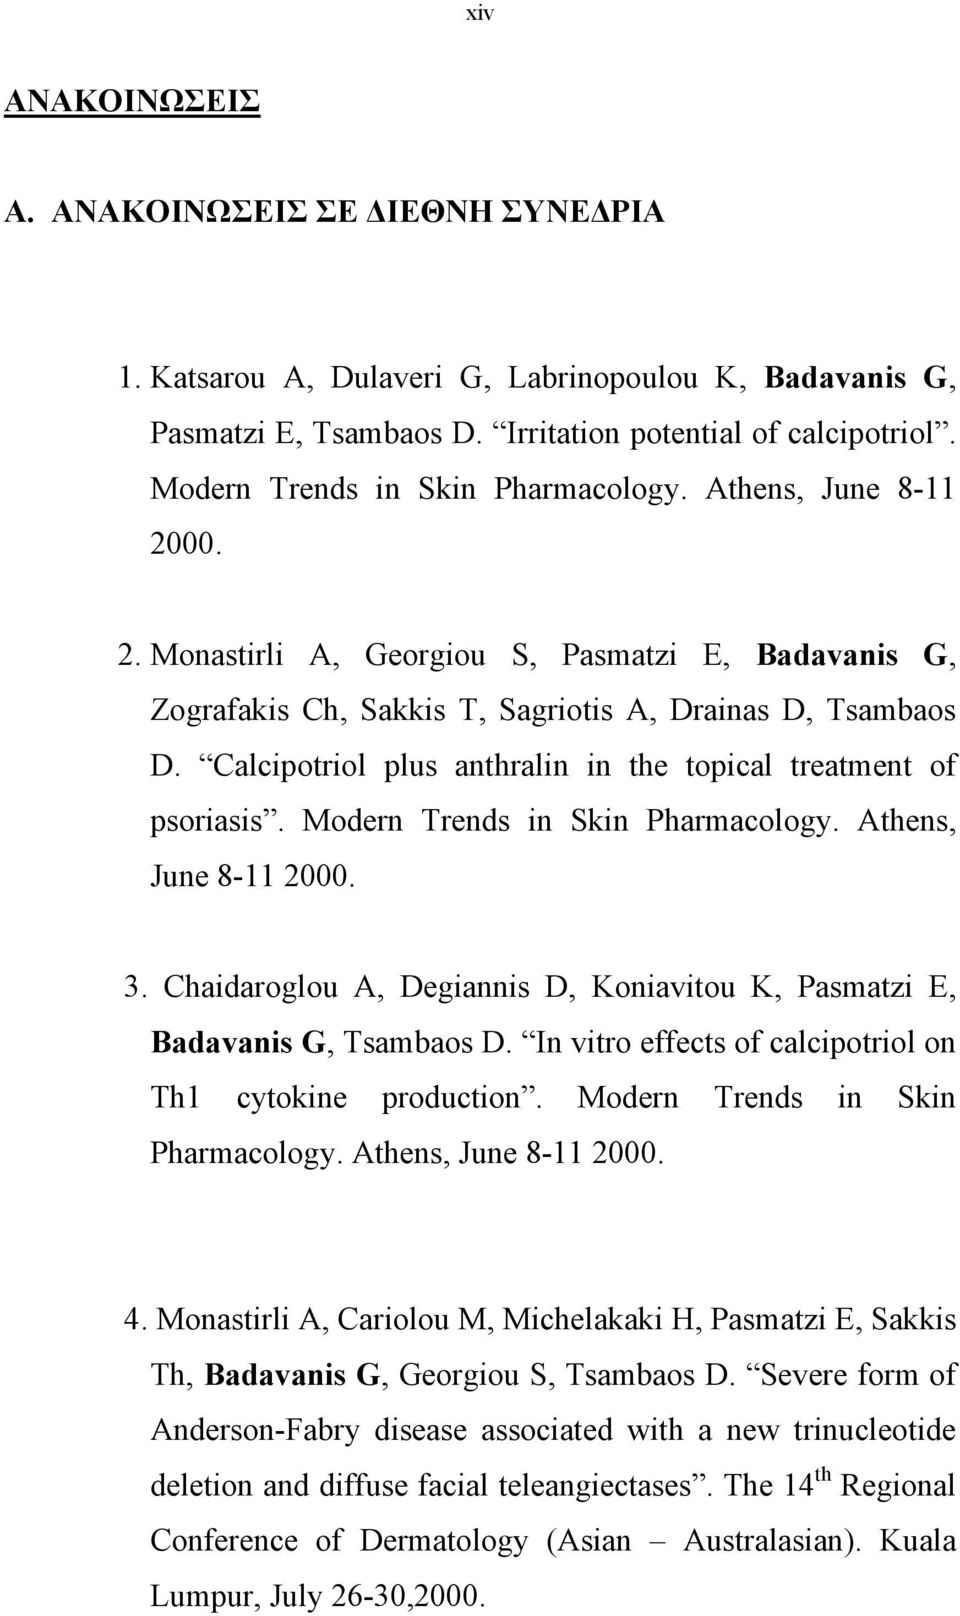 Calcipotriol plus anthralin in the topical treatment of psoriasis. Modern Trends in Skin Pharmacology. Athens, June 8-11 2000. 3.